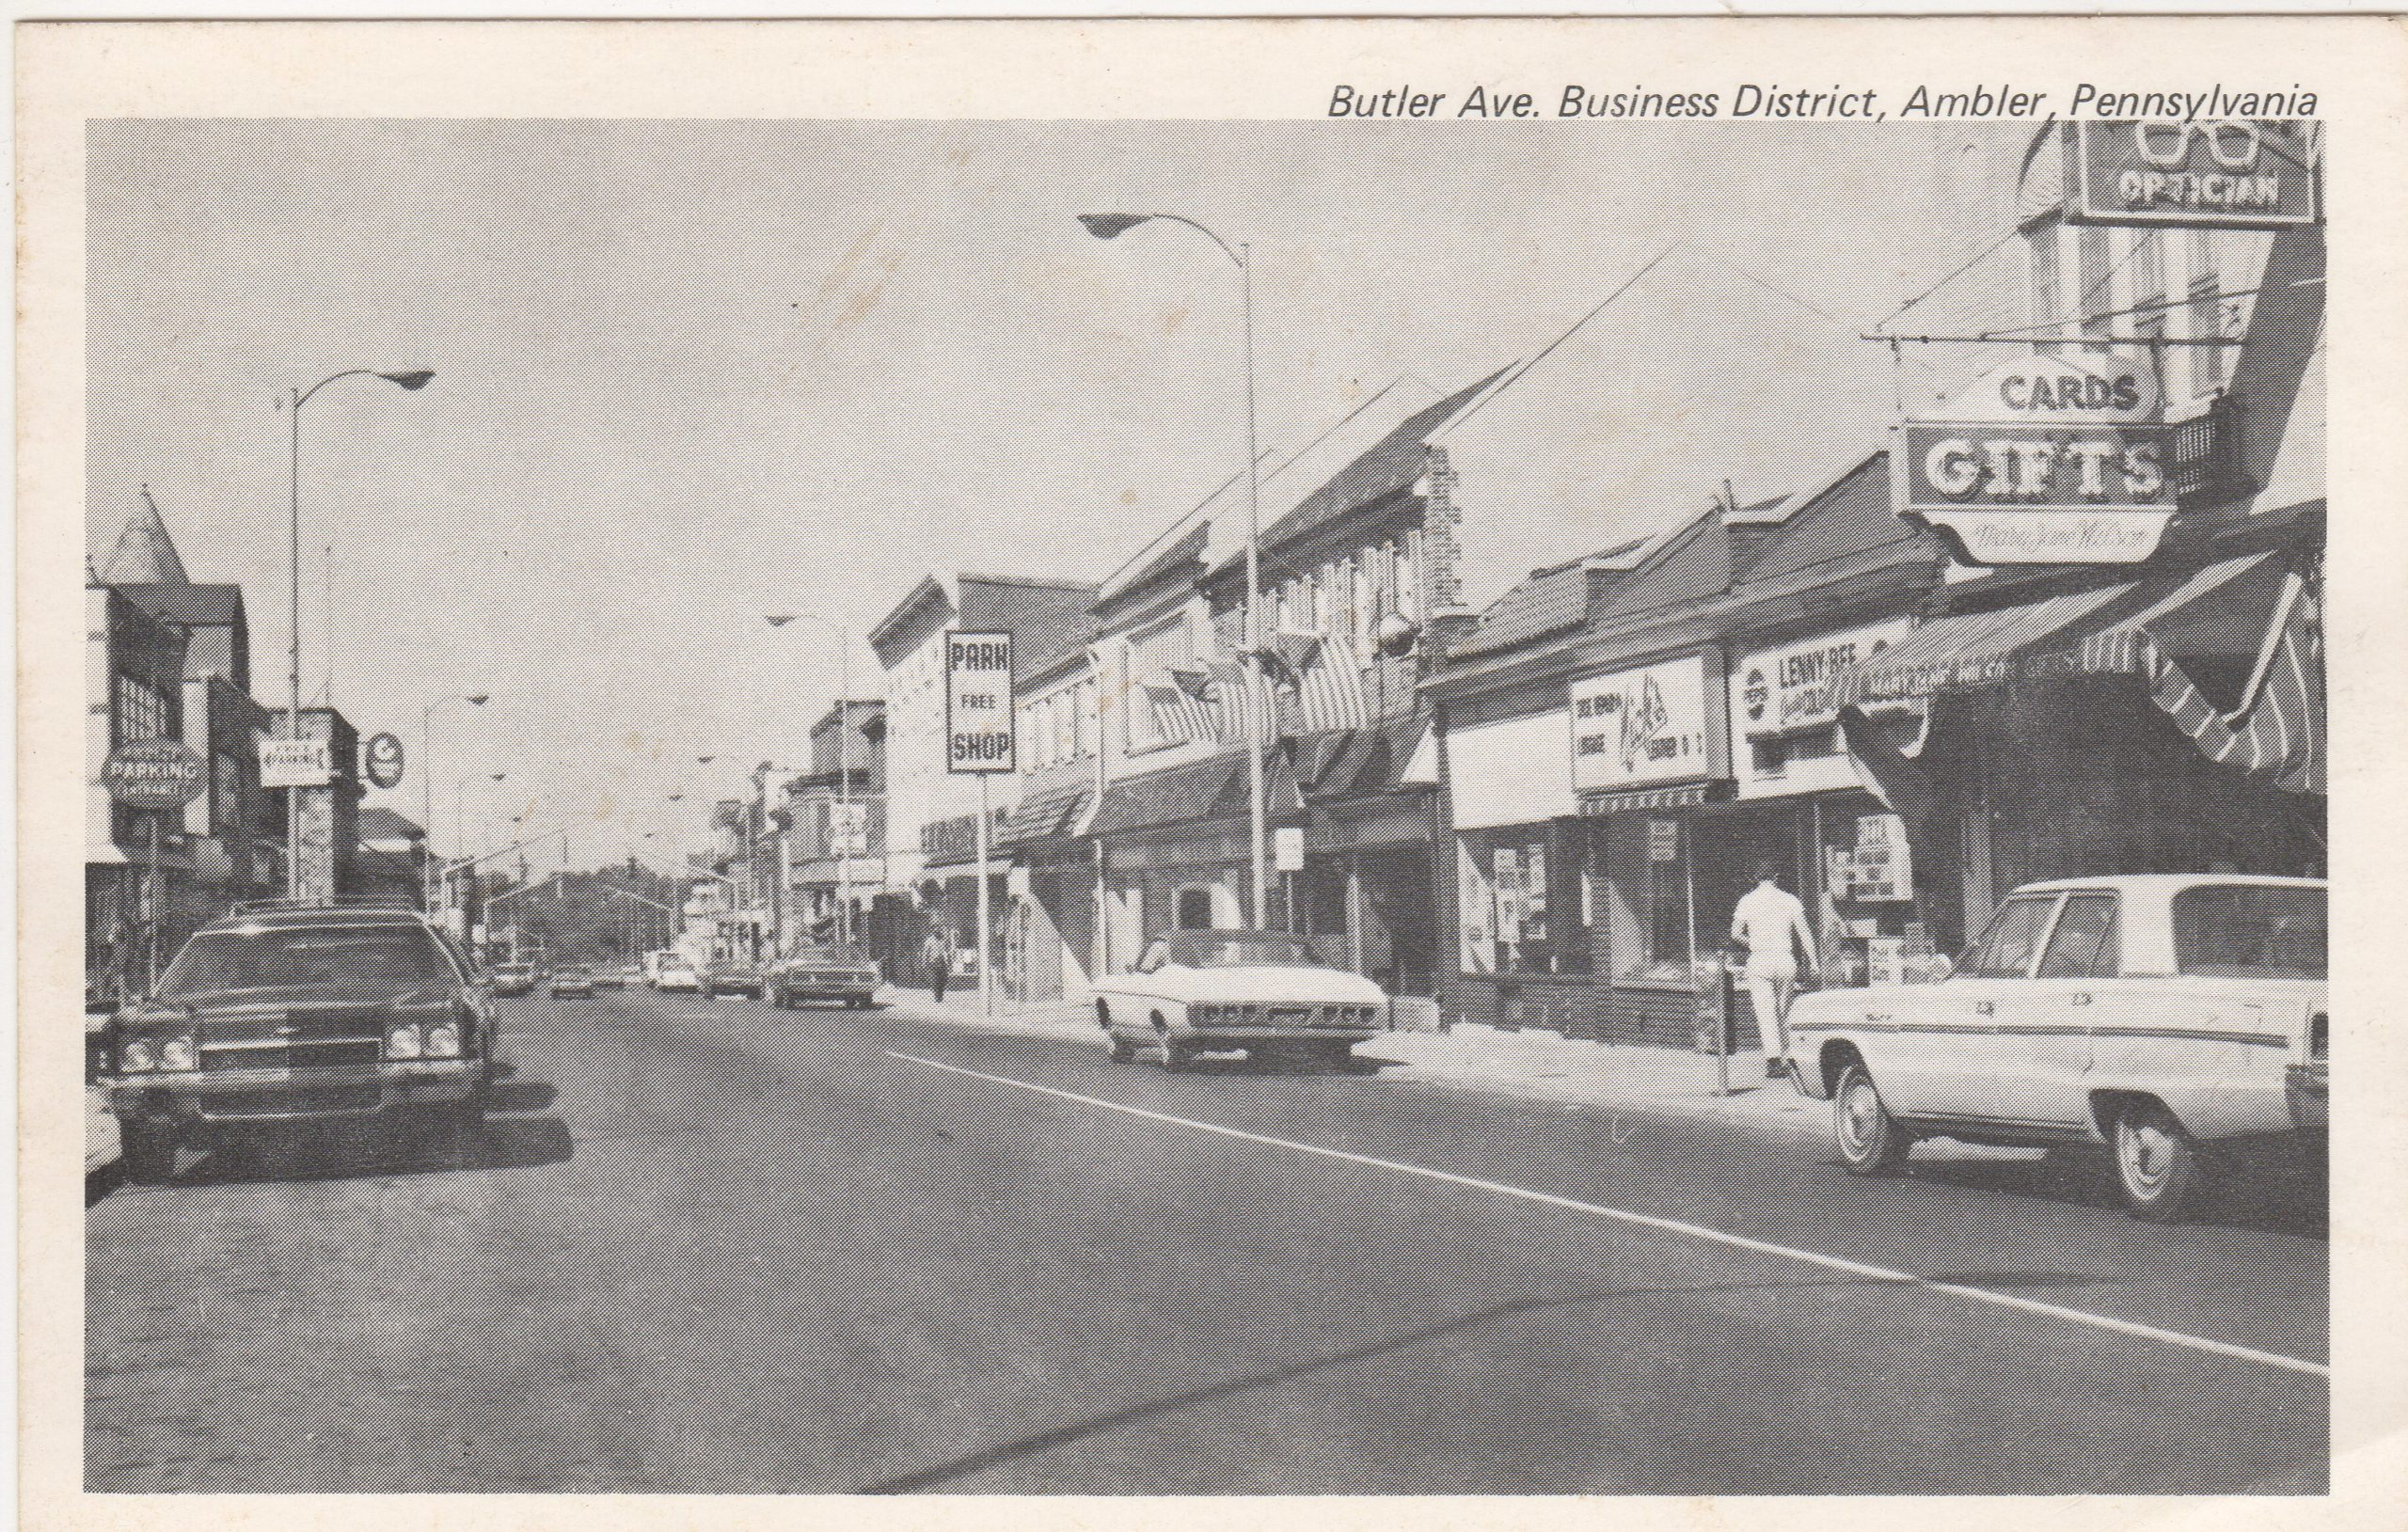 4125.71 Ambler Pa Postcard_Butler Ae Business District_circa 1964